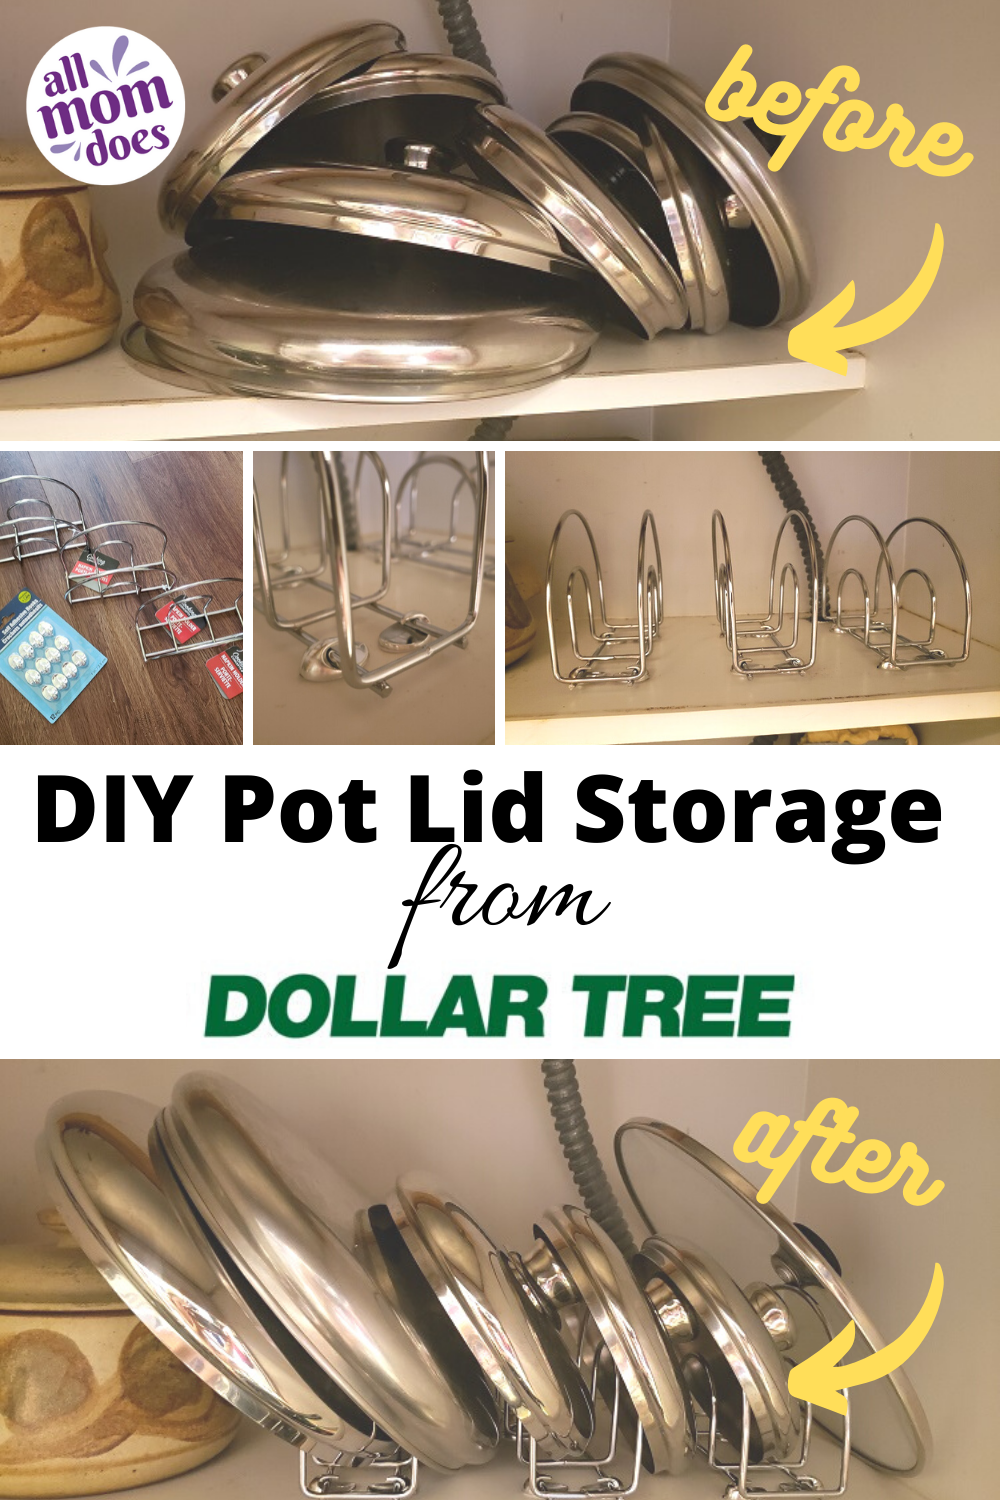 Diy Inexpensive Pot Lid Storage From Dollar Tree Allmomdoes